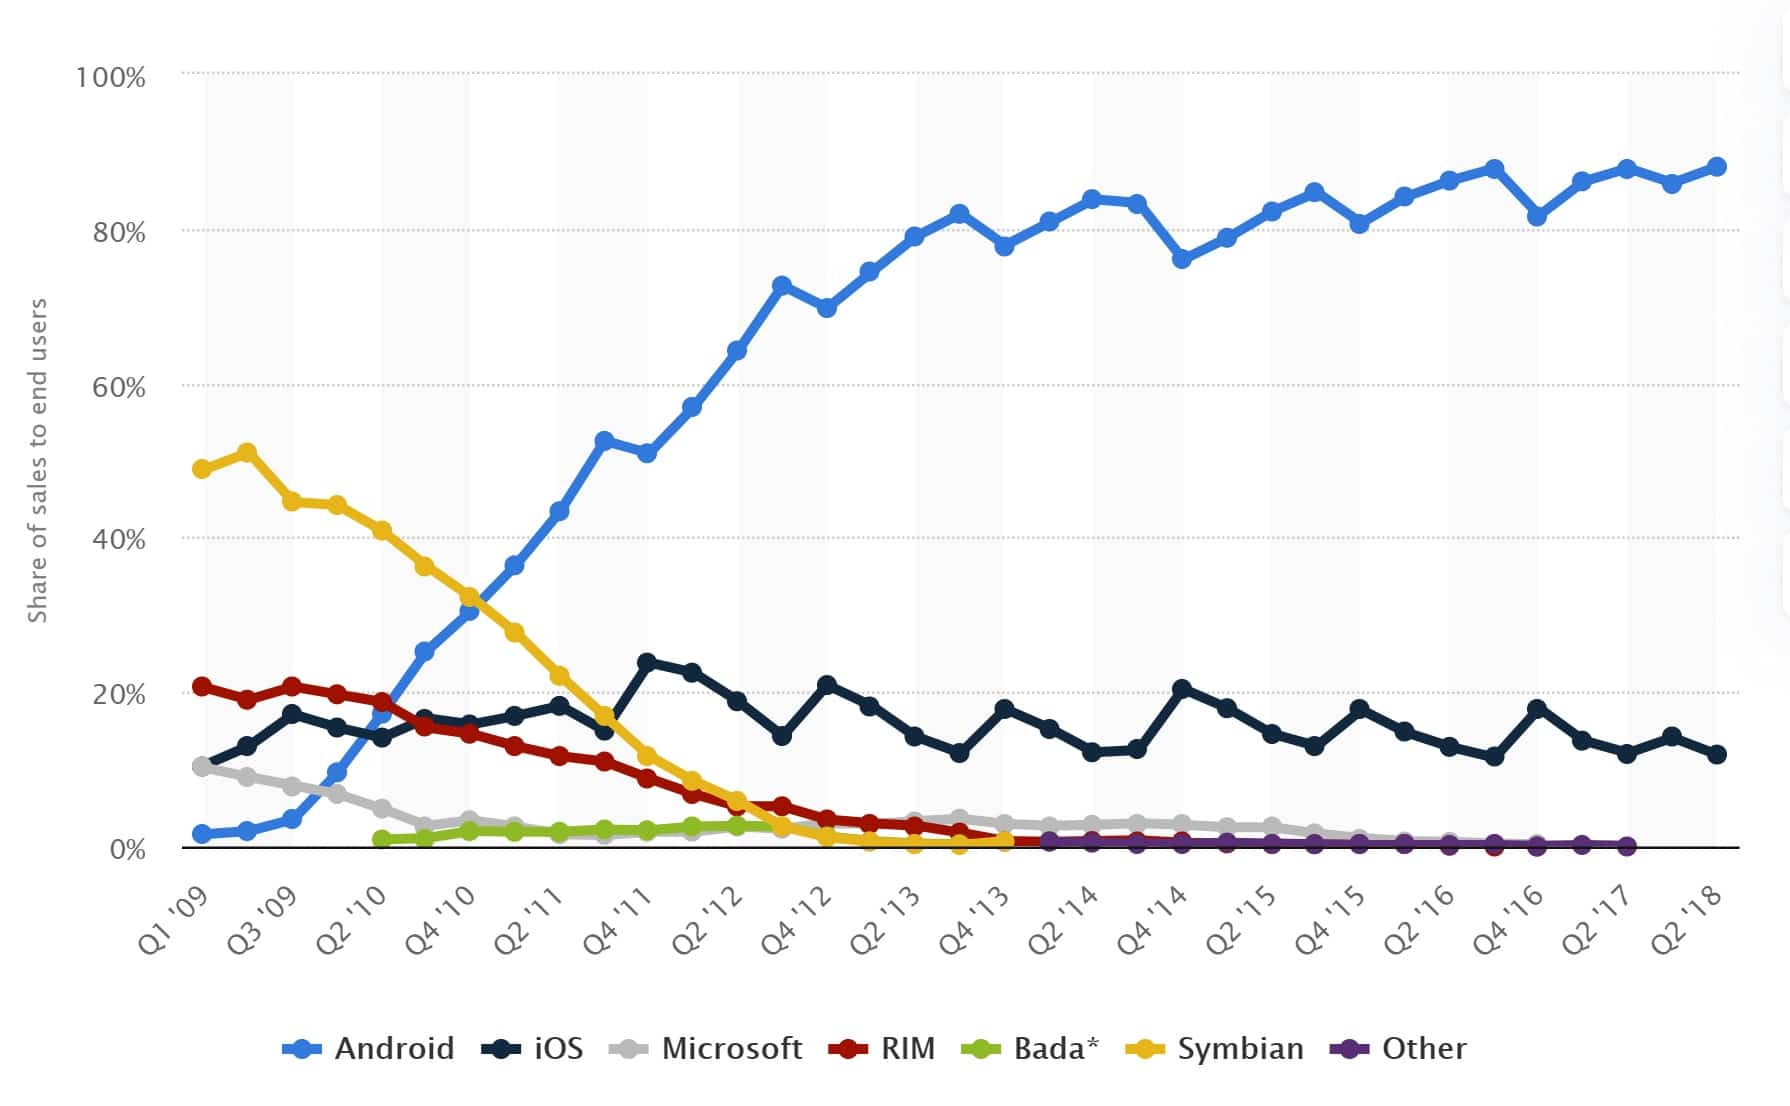 Android market share exceeed iOS rapidly